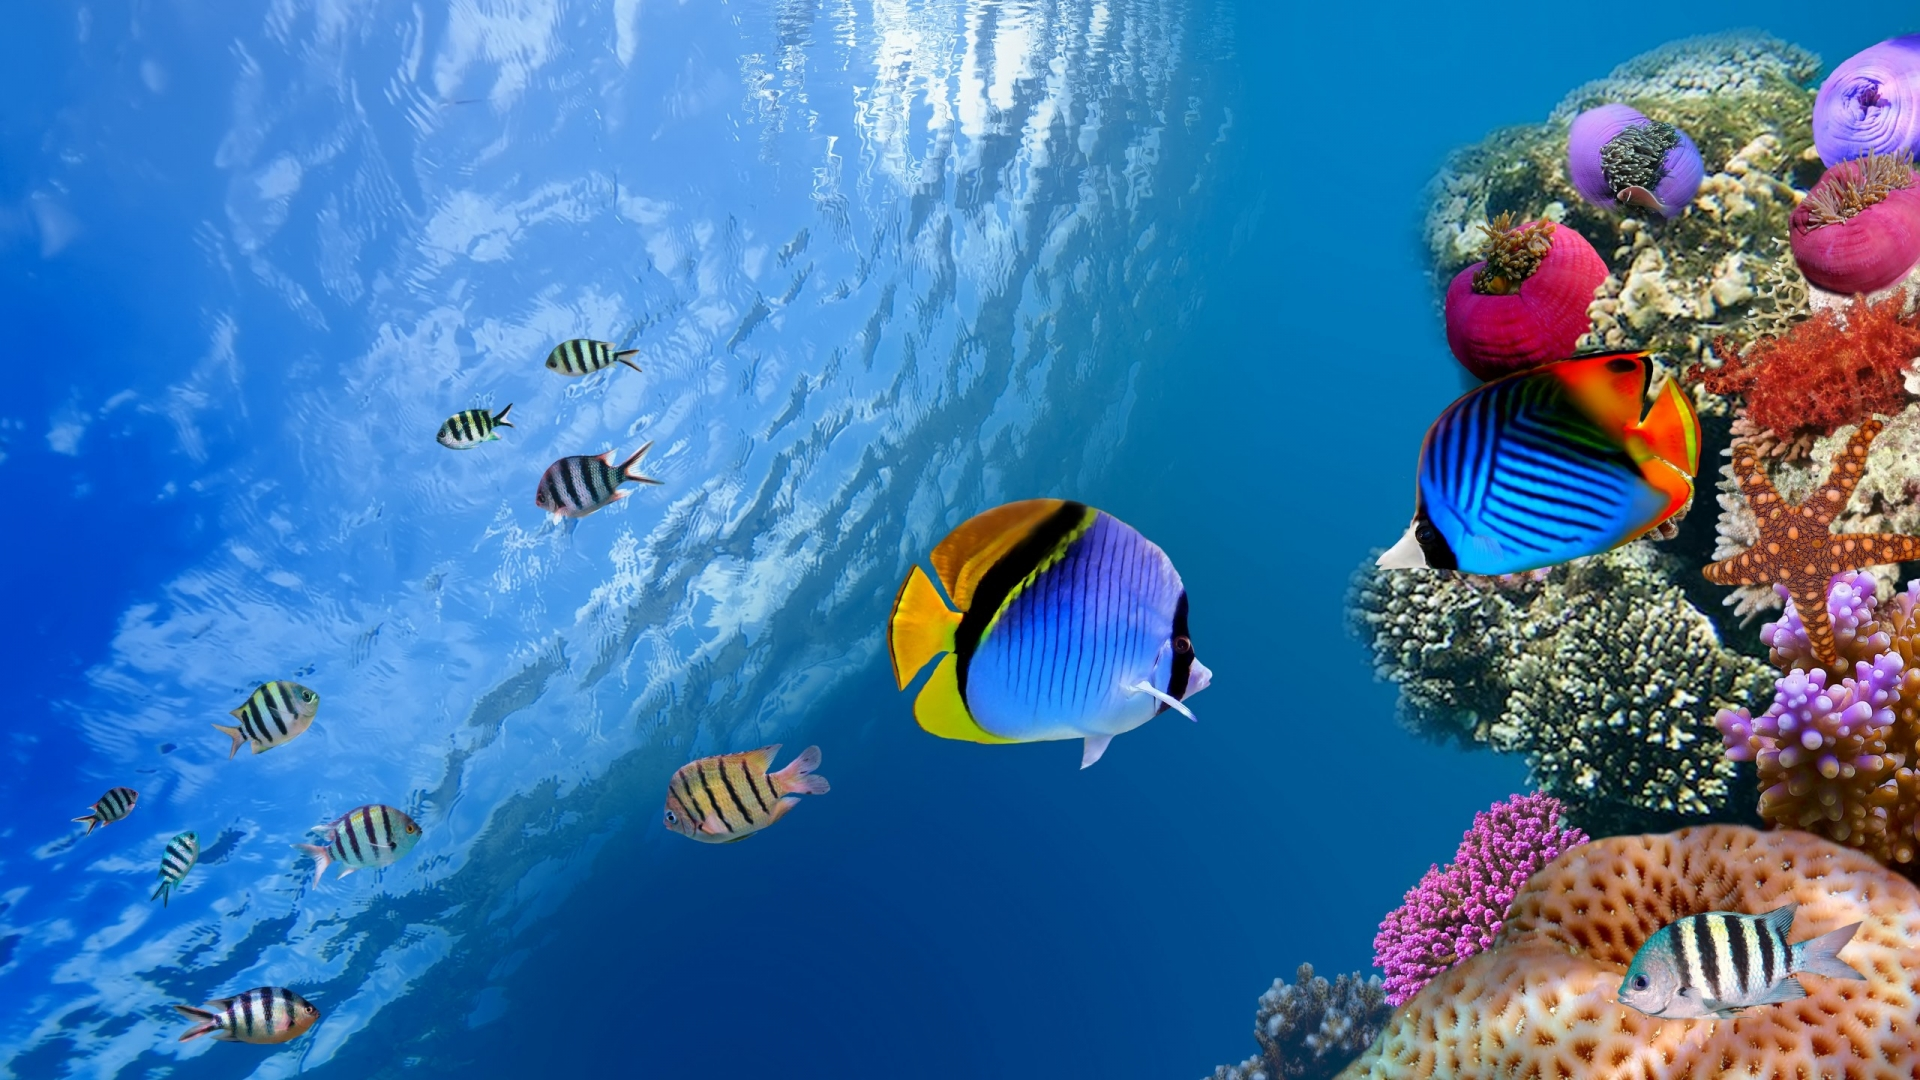 Underwater Ocean Scene Wallpaper   Viewing Gallery 1920x1080